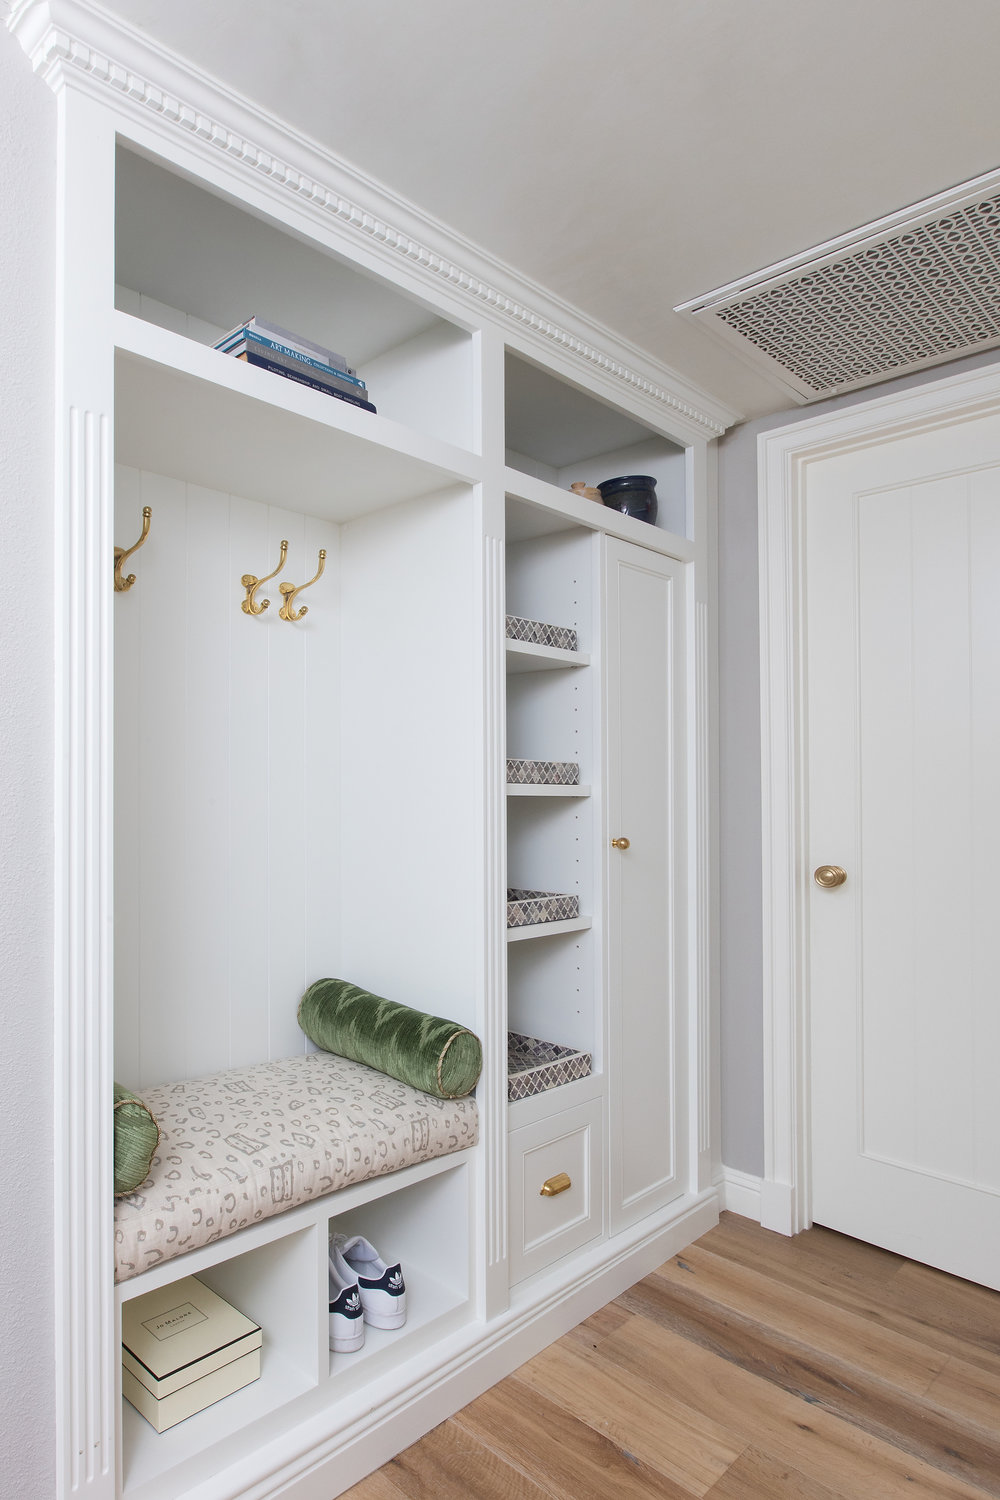 Spring Cleaning, Organization & Storage Ideas - By Samantha Myers